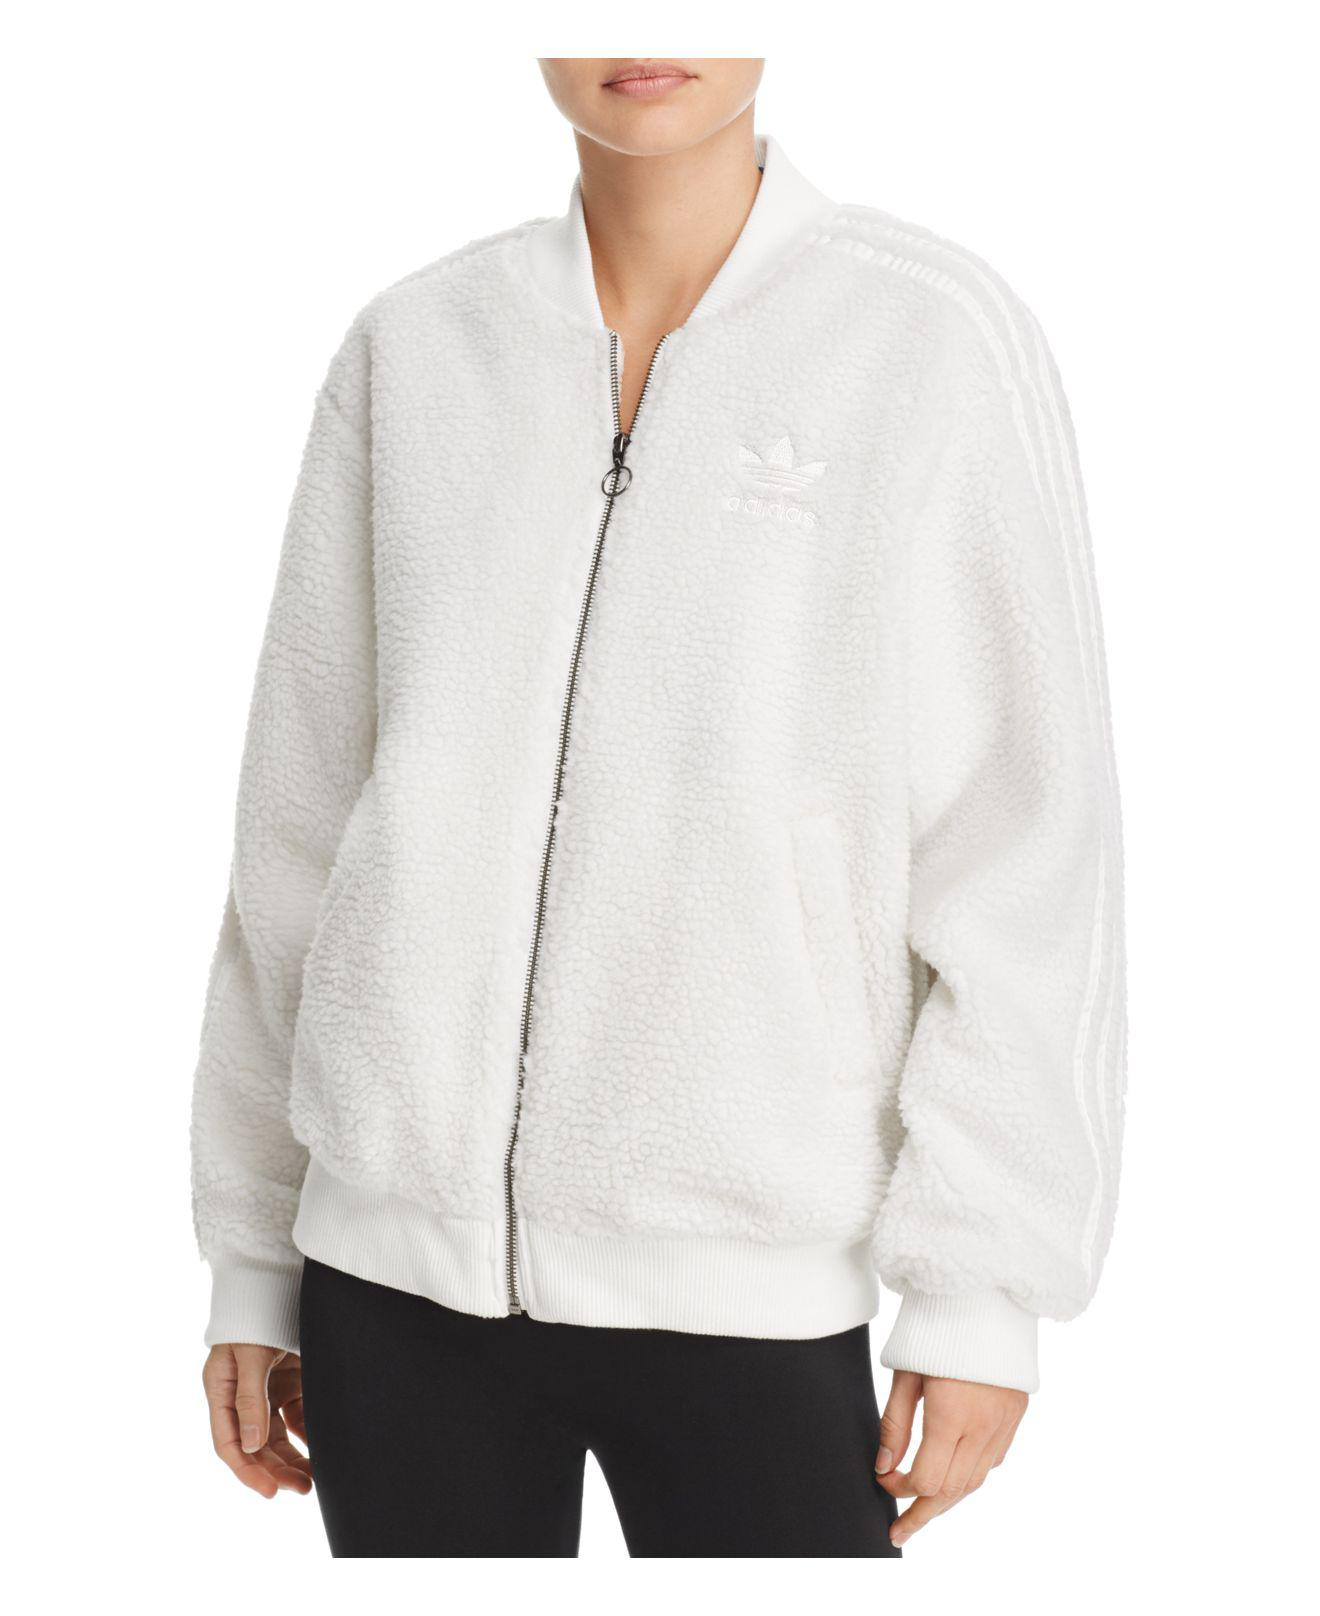 adidas fleece sweater